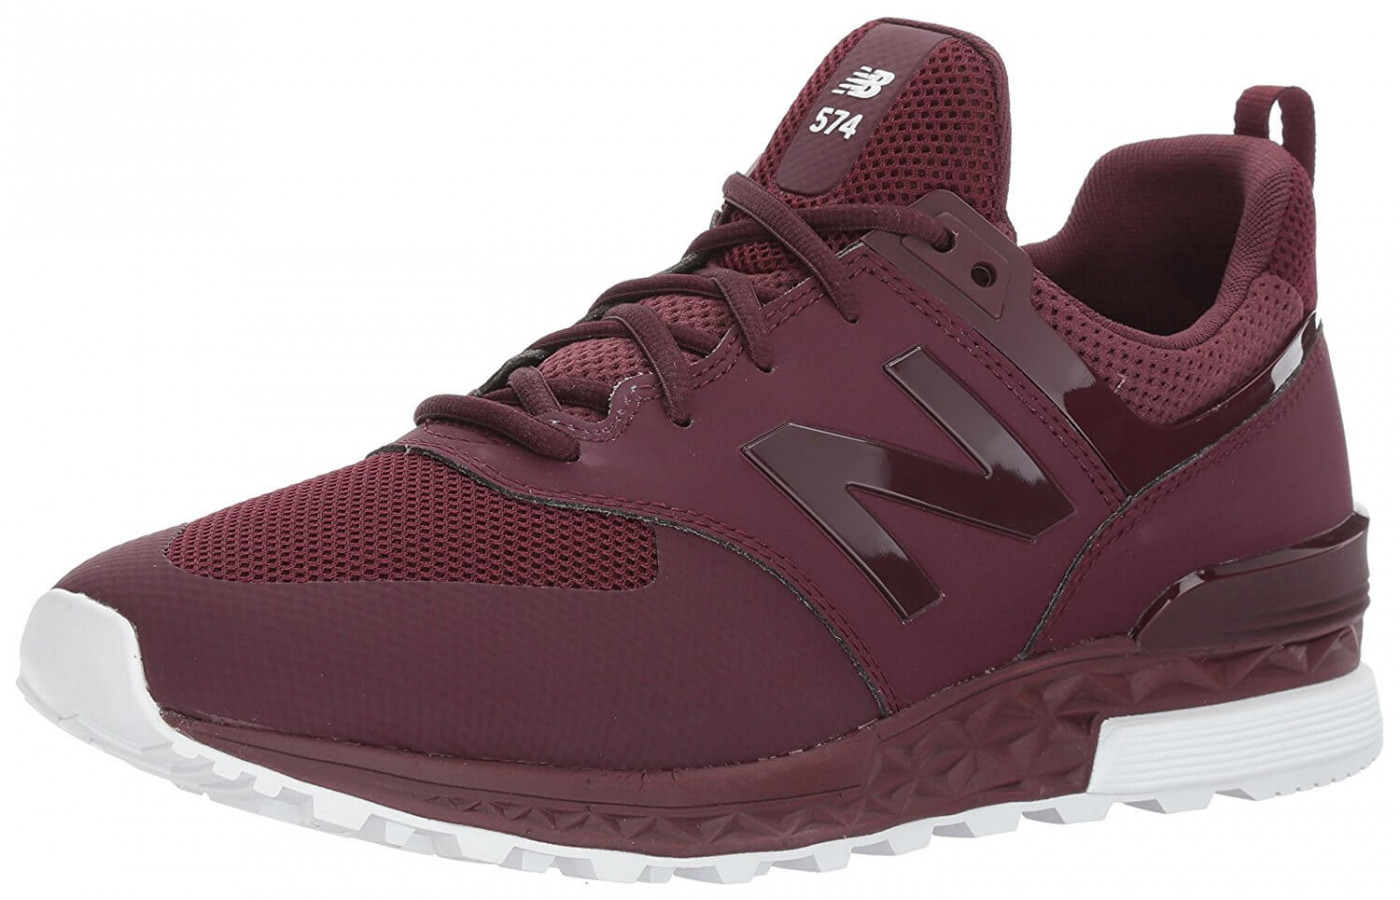 c68e15b7ad287 New Balance 574 Sport. The 574 Sport is available in a wide range of color  options for men and women ...